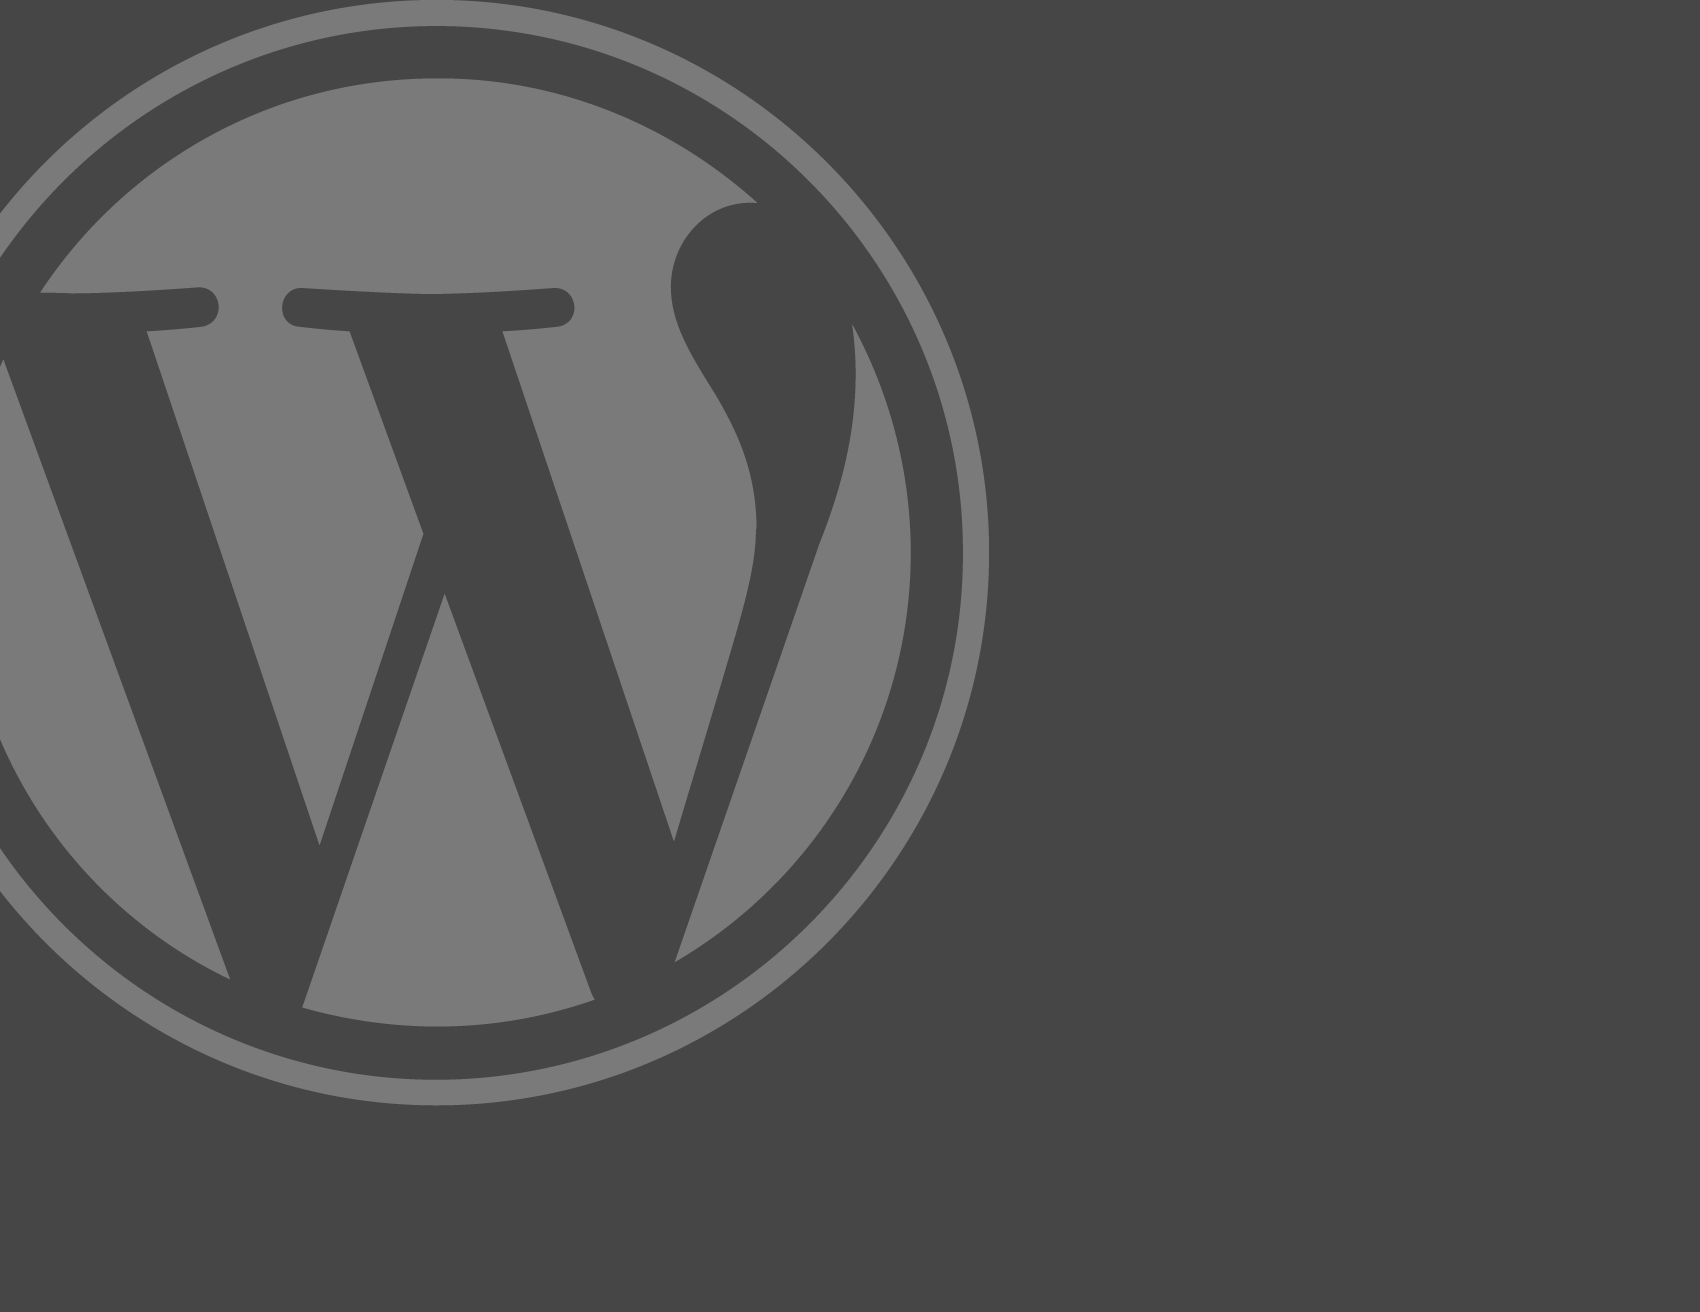 #1 Éléments de base du backend de WordPress